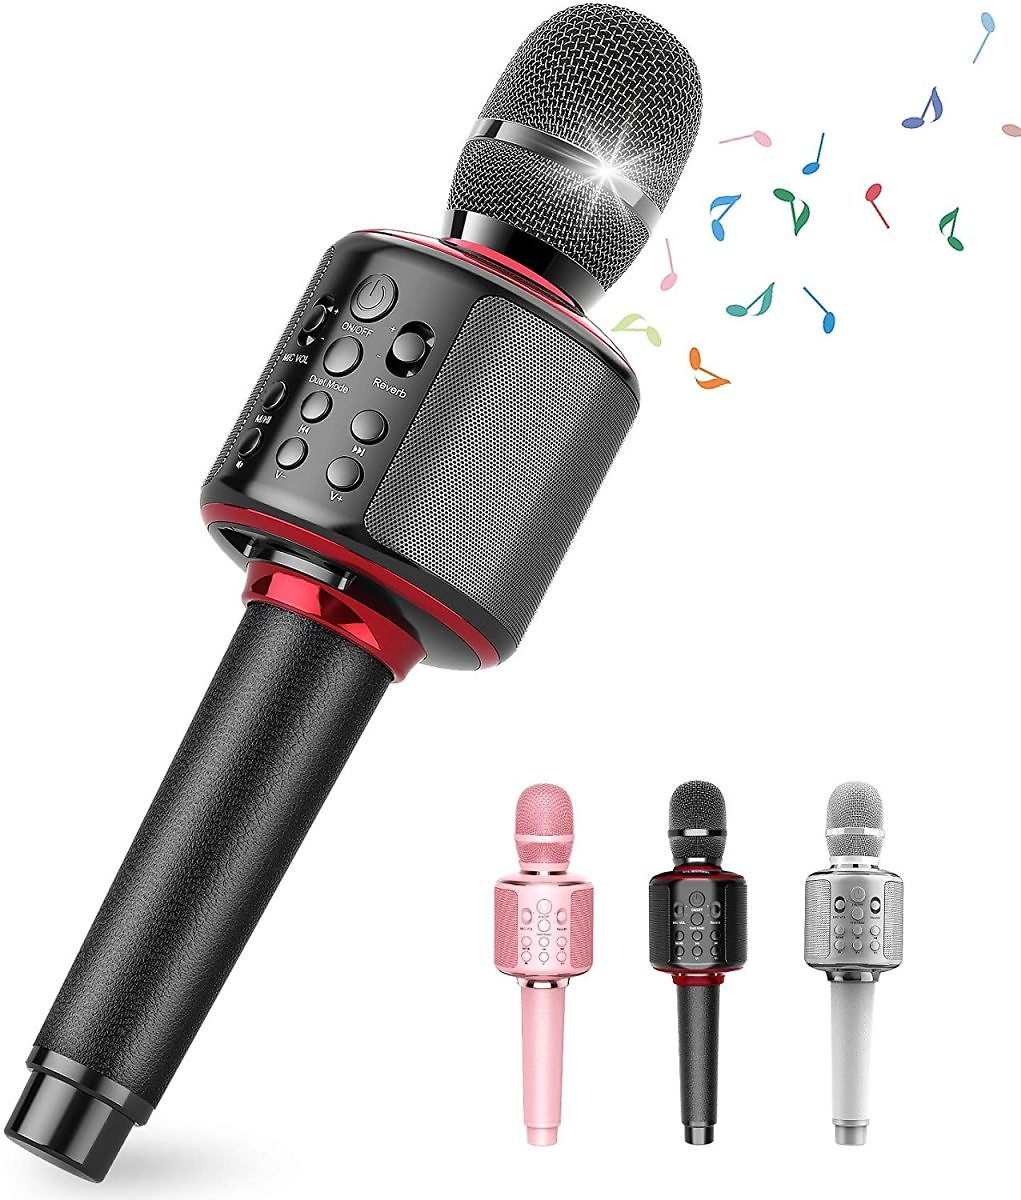 Wireless Bluetooth Karaoke Microphone with Dual Sing, Leather Portable Handheld Mic Speaker Professional Machine for IPhone/Andr